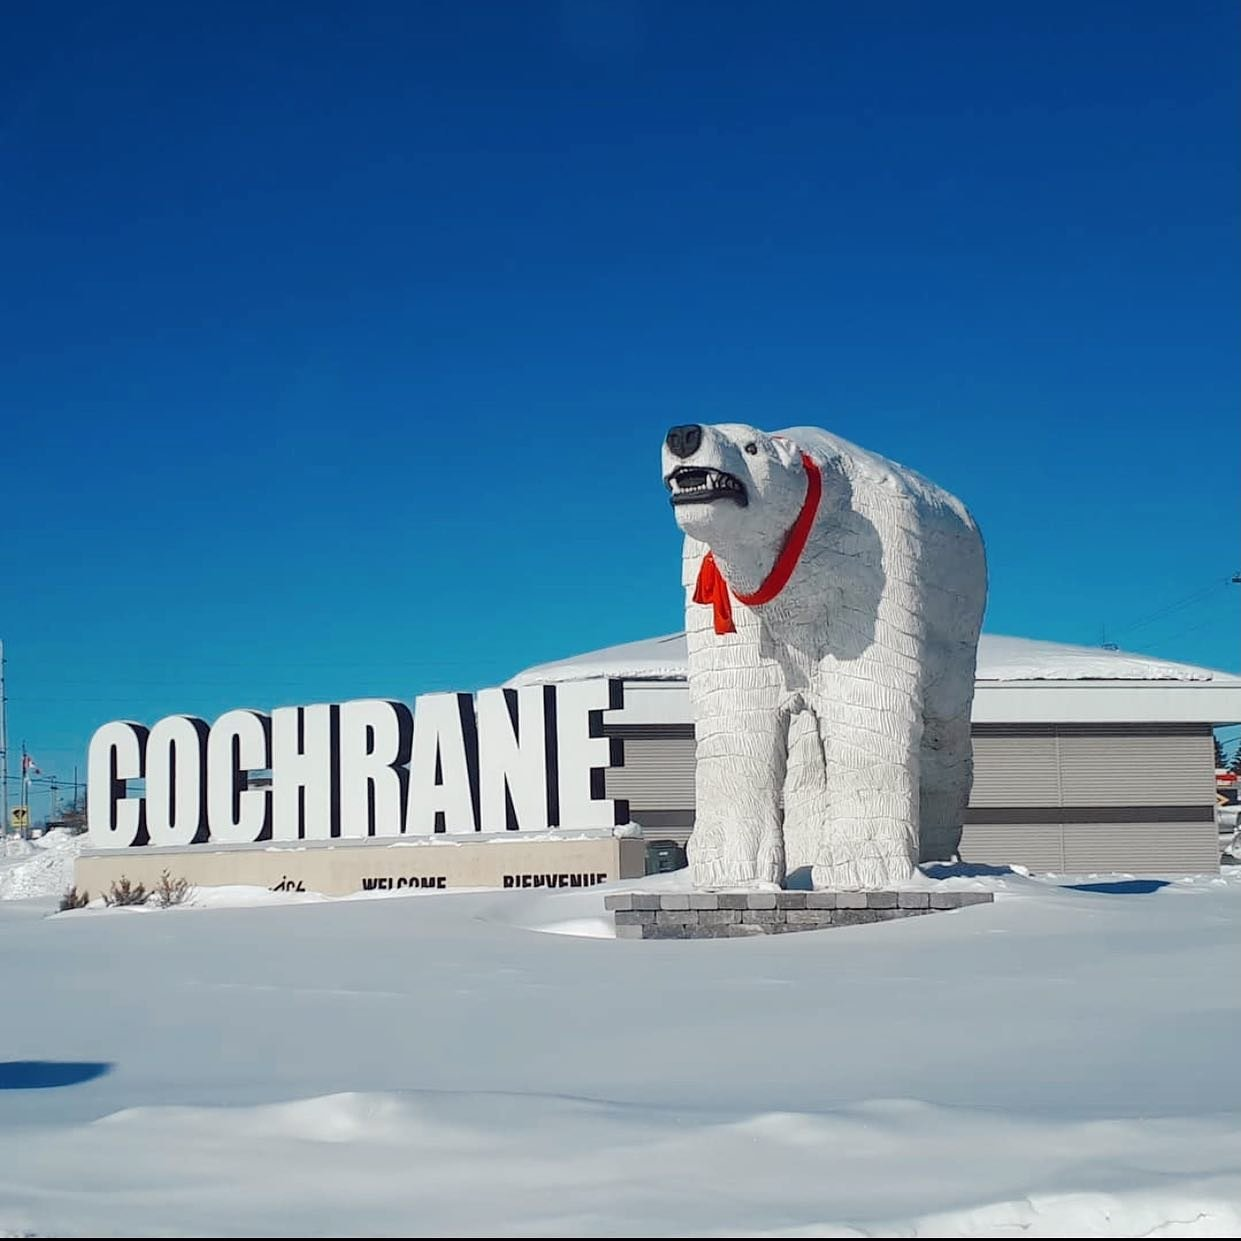 A Polar Bear statue beside a statue of the word Cochrane covered in a layer of snow welcoming people to the city